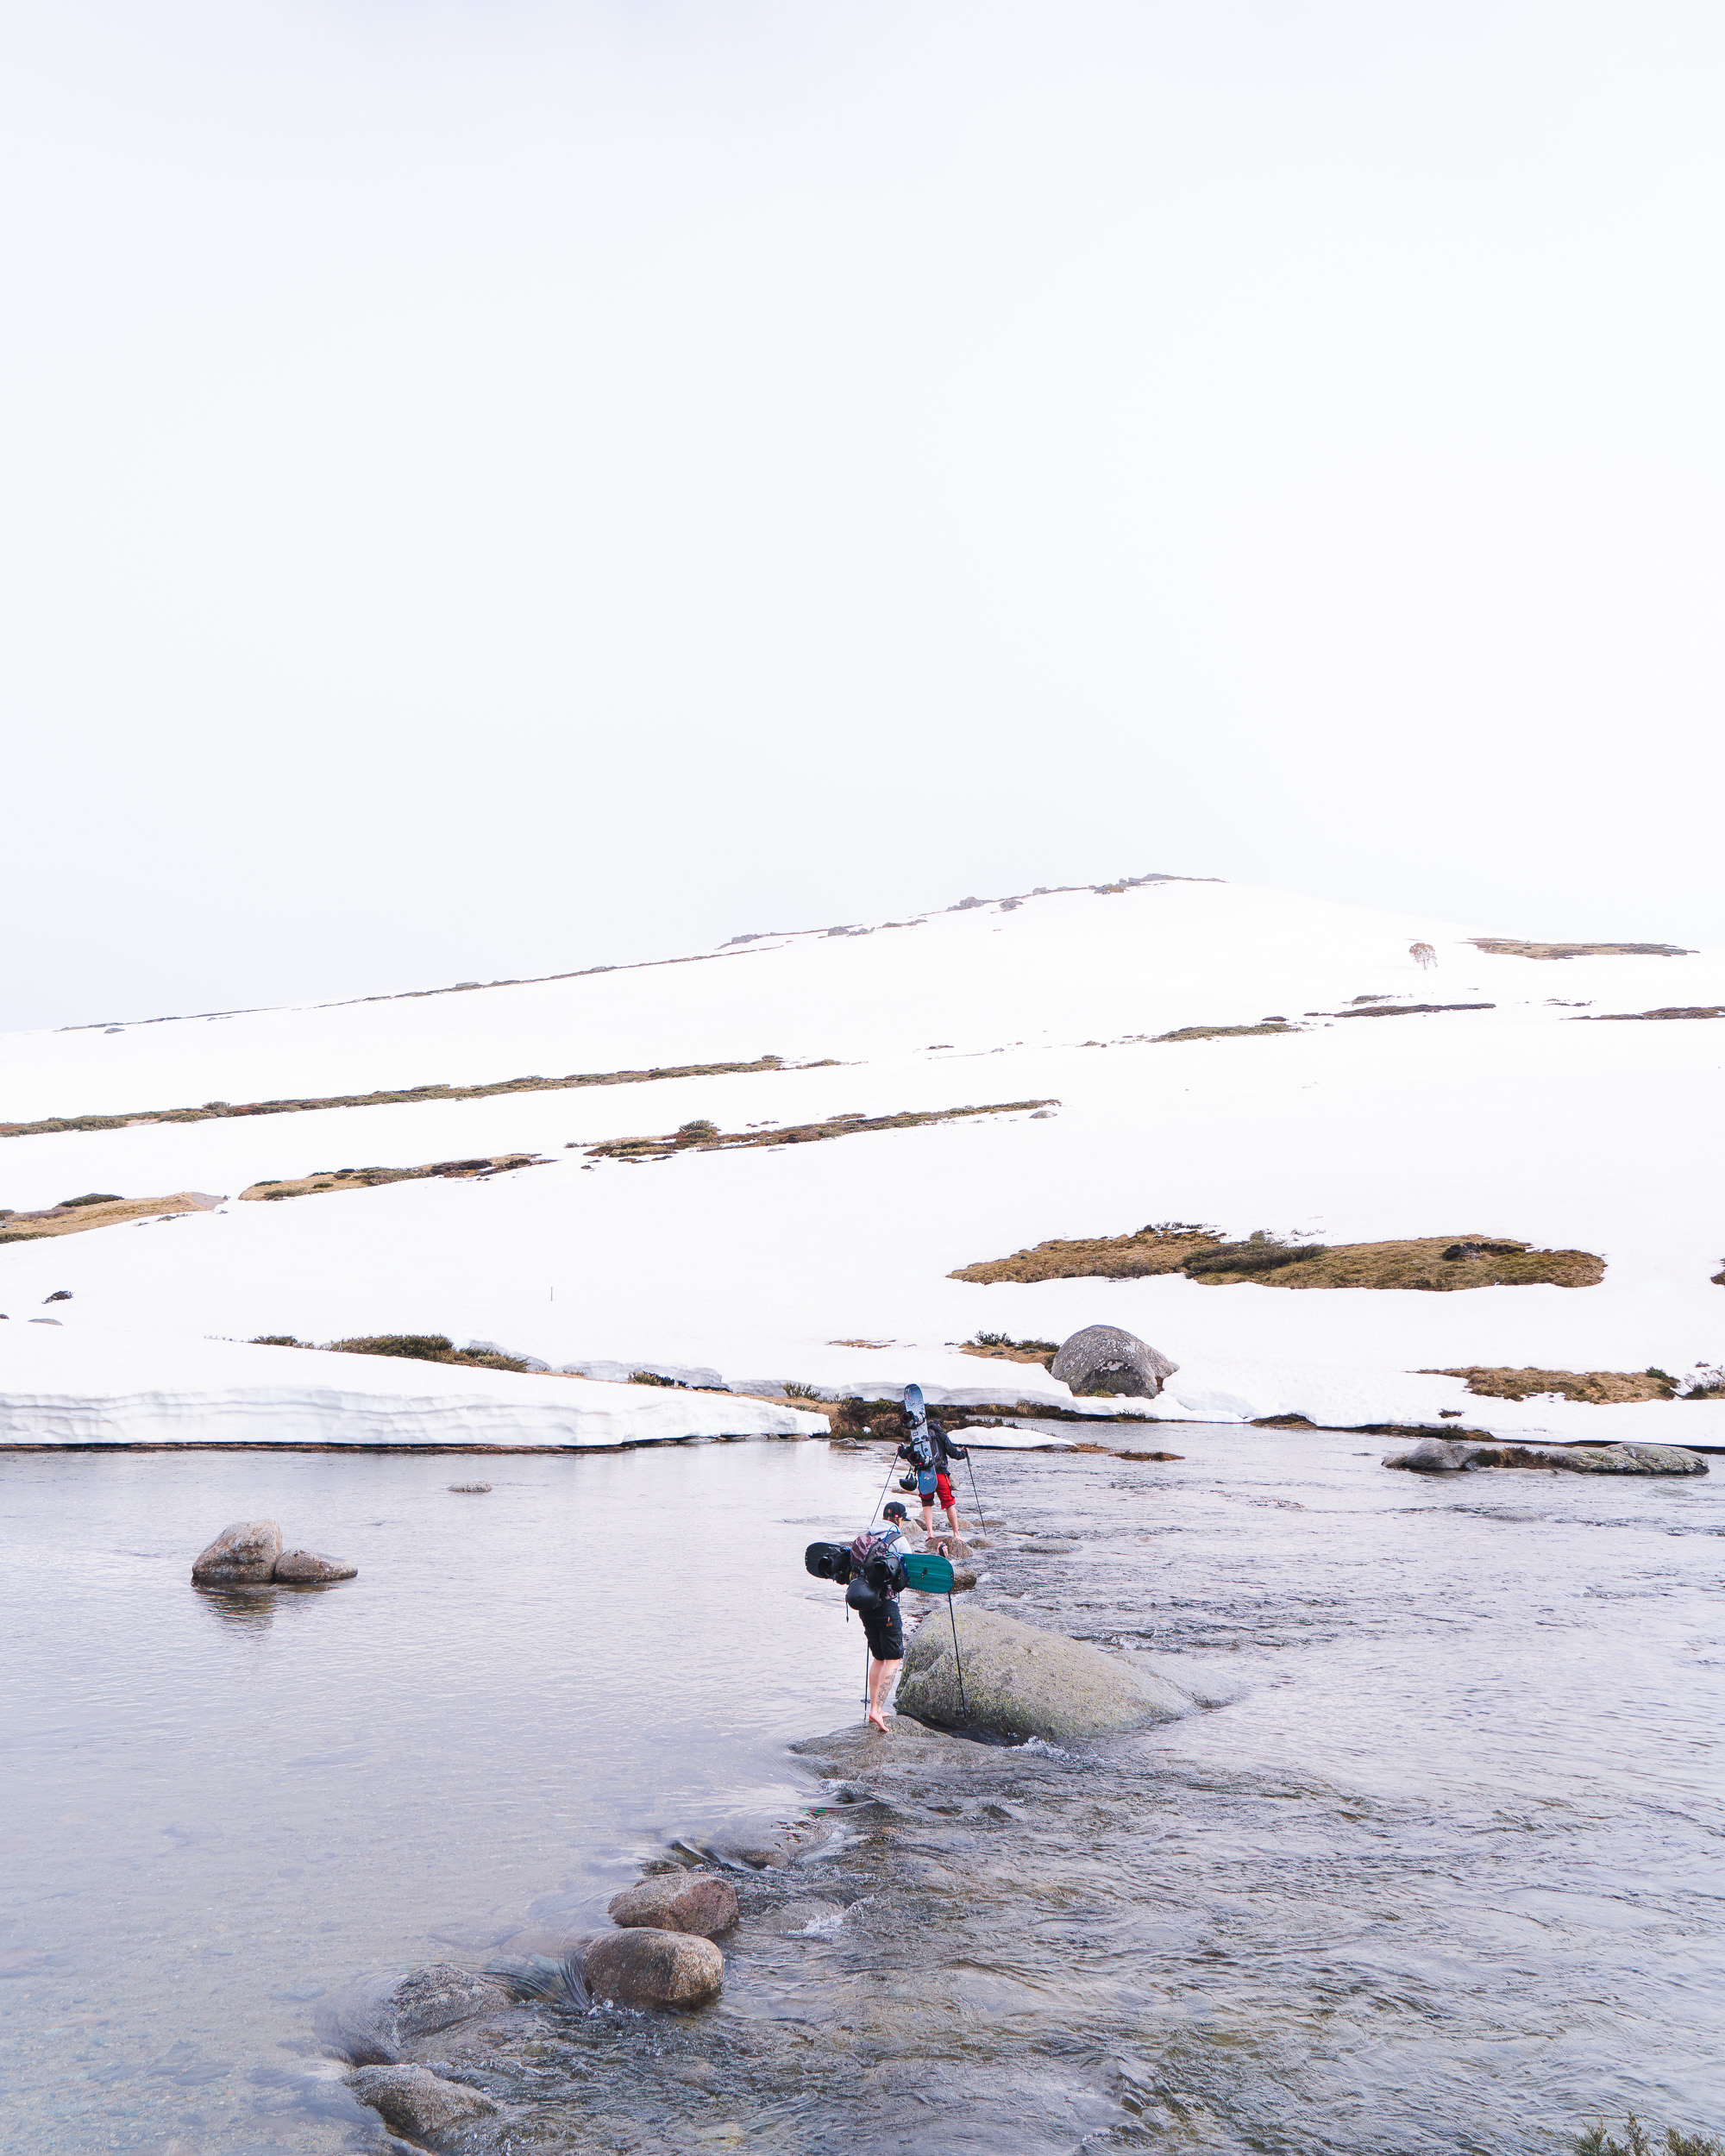 Crossing the Snowy River. Make sure you tie your equipment down well.